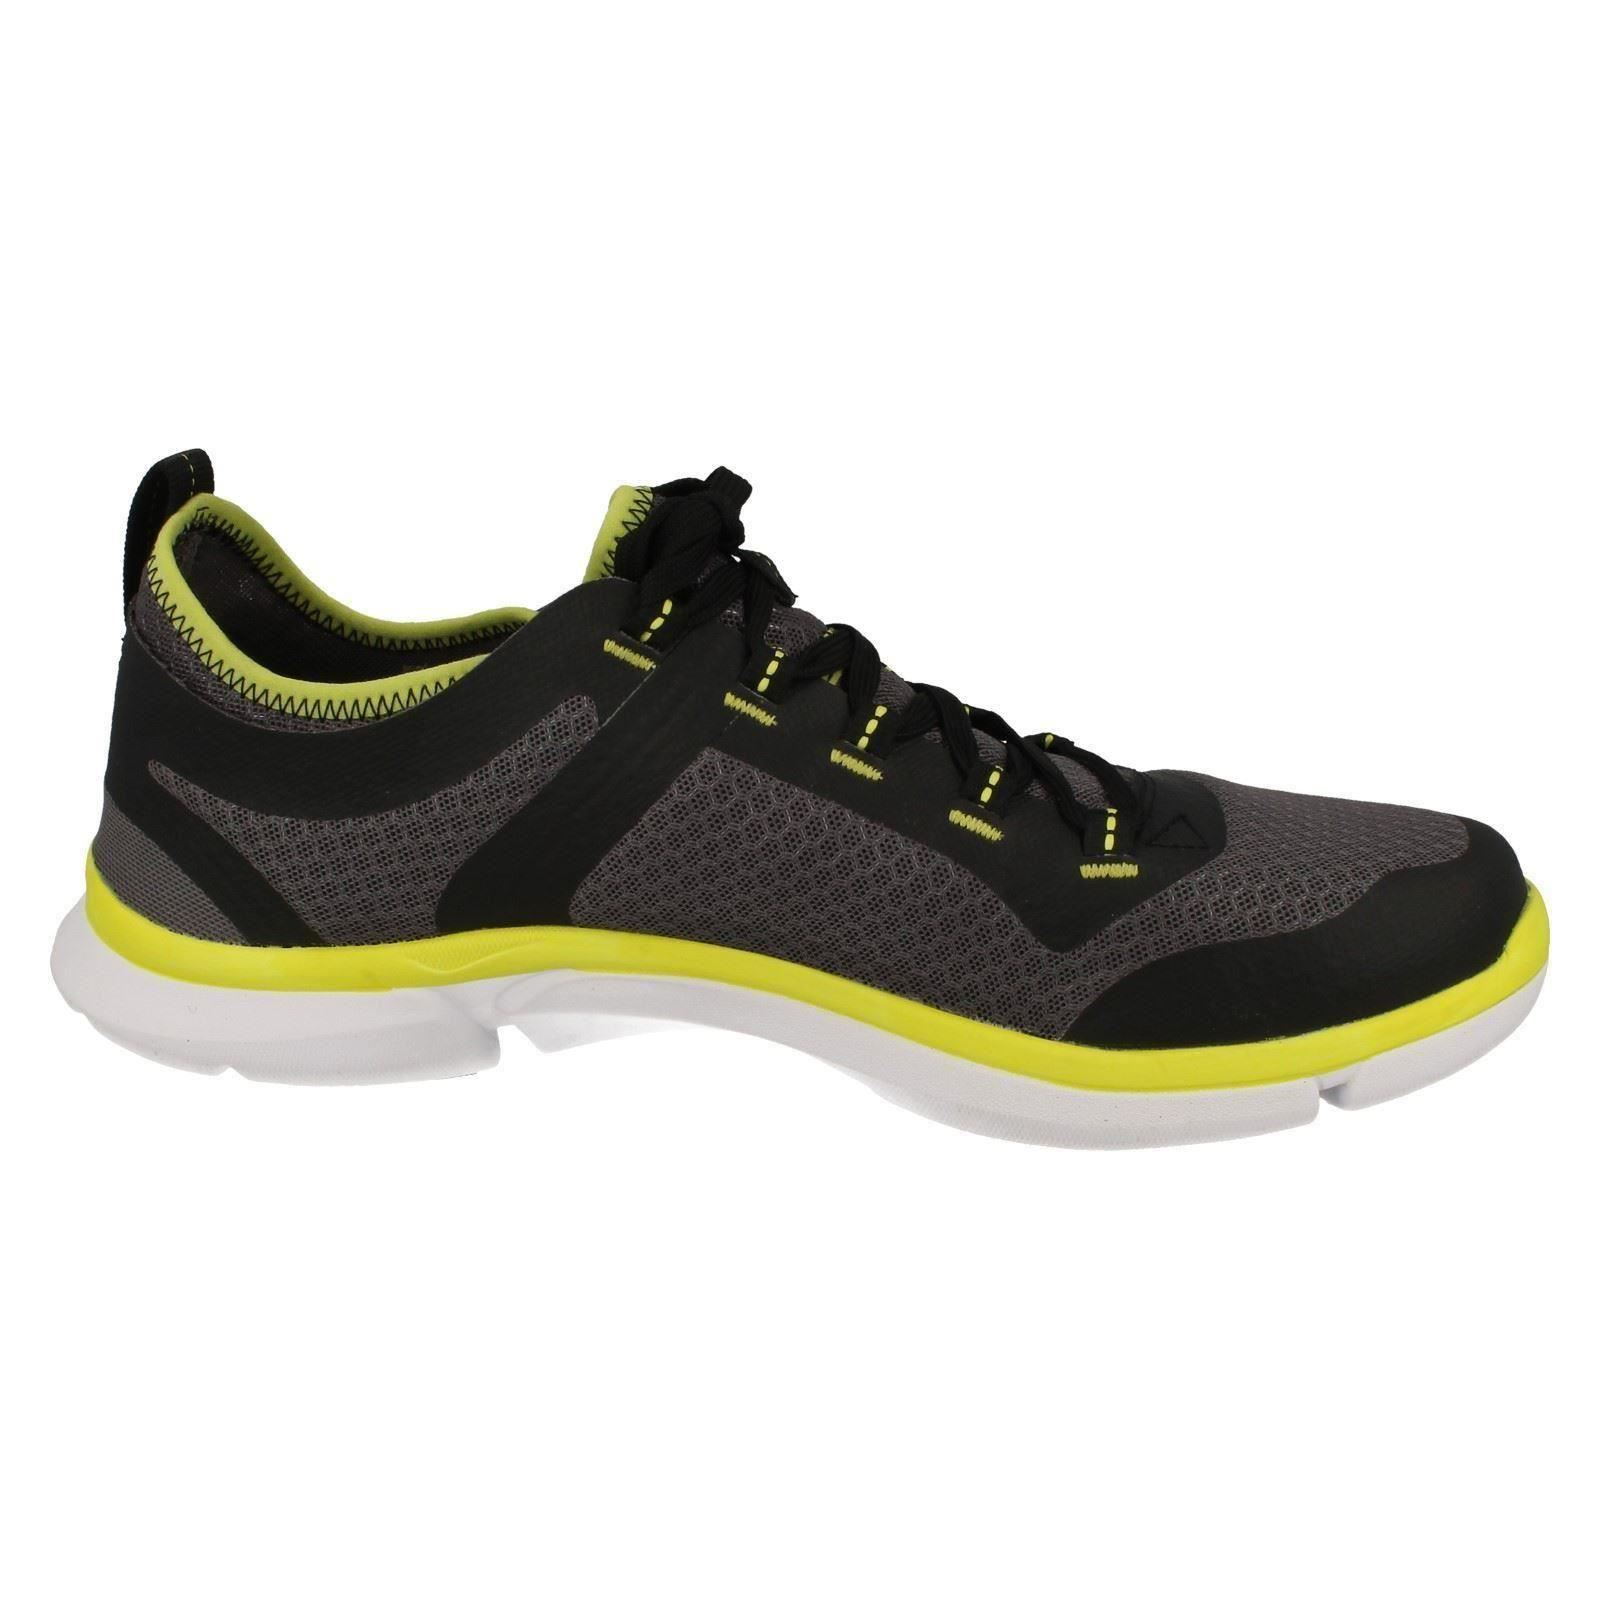 Mens-Clarks-Triken-Active-Casual-Trainers thumbnail 7